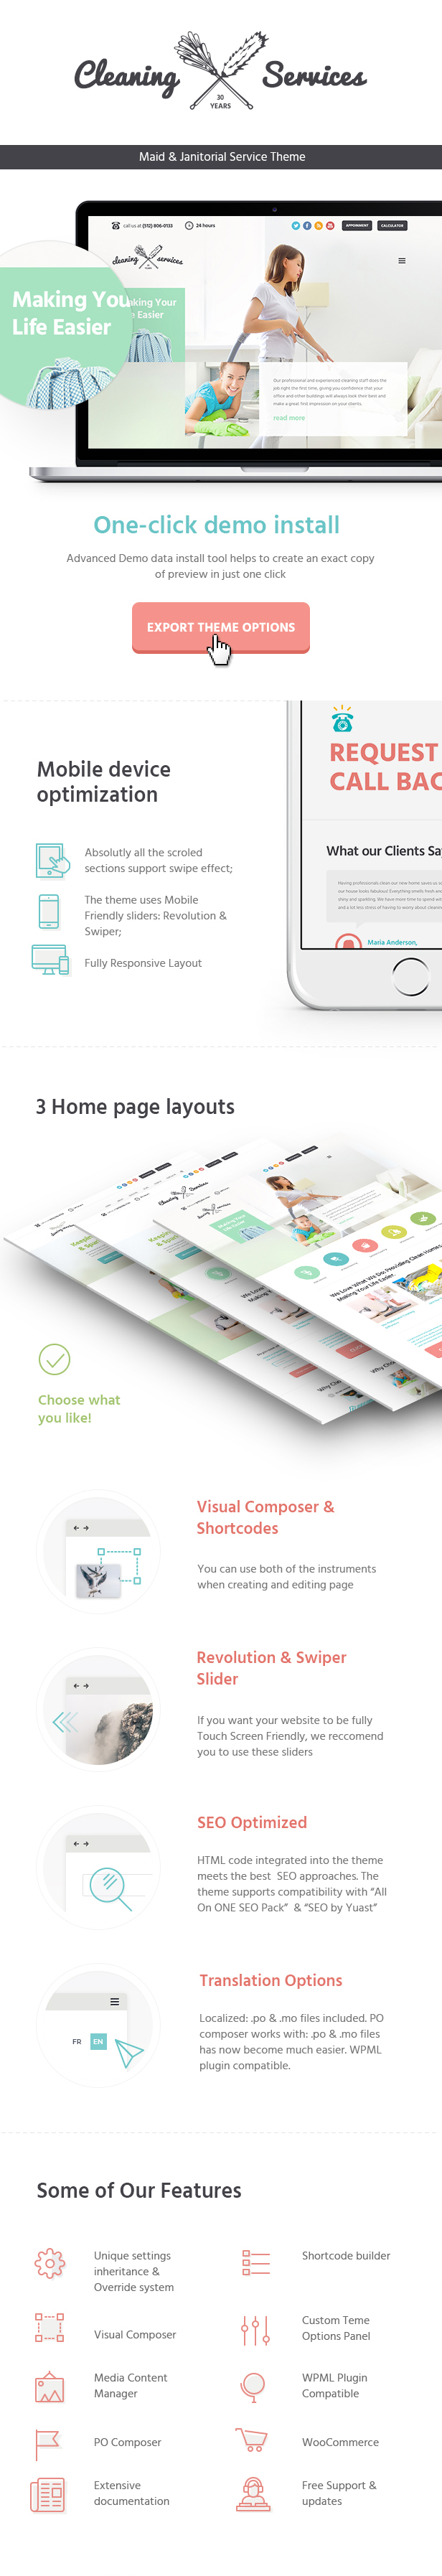 Cleaning Company - Maid & Janitorial Service WordPress Theme - 2